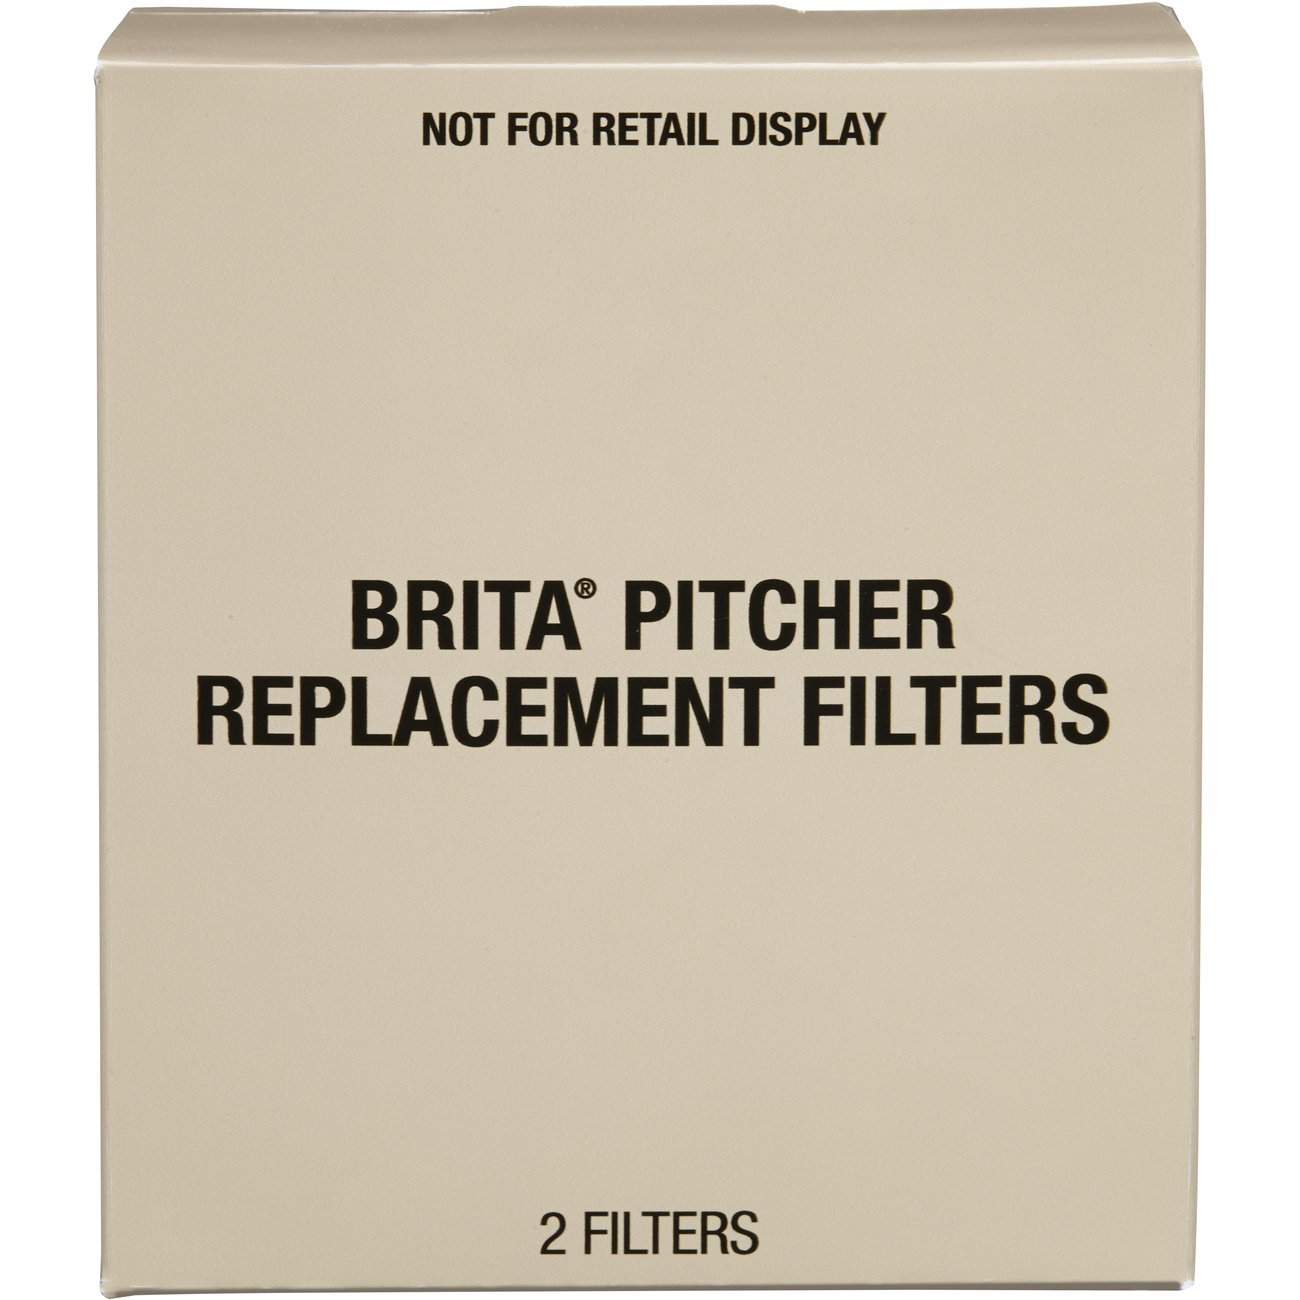 Brita Water Pitcher Filter Replacements 2 Count by Brita (Image #4)